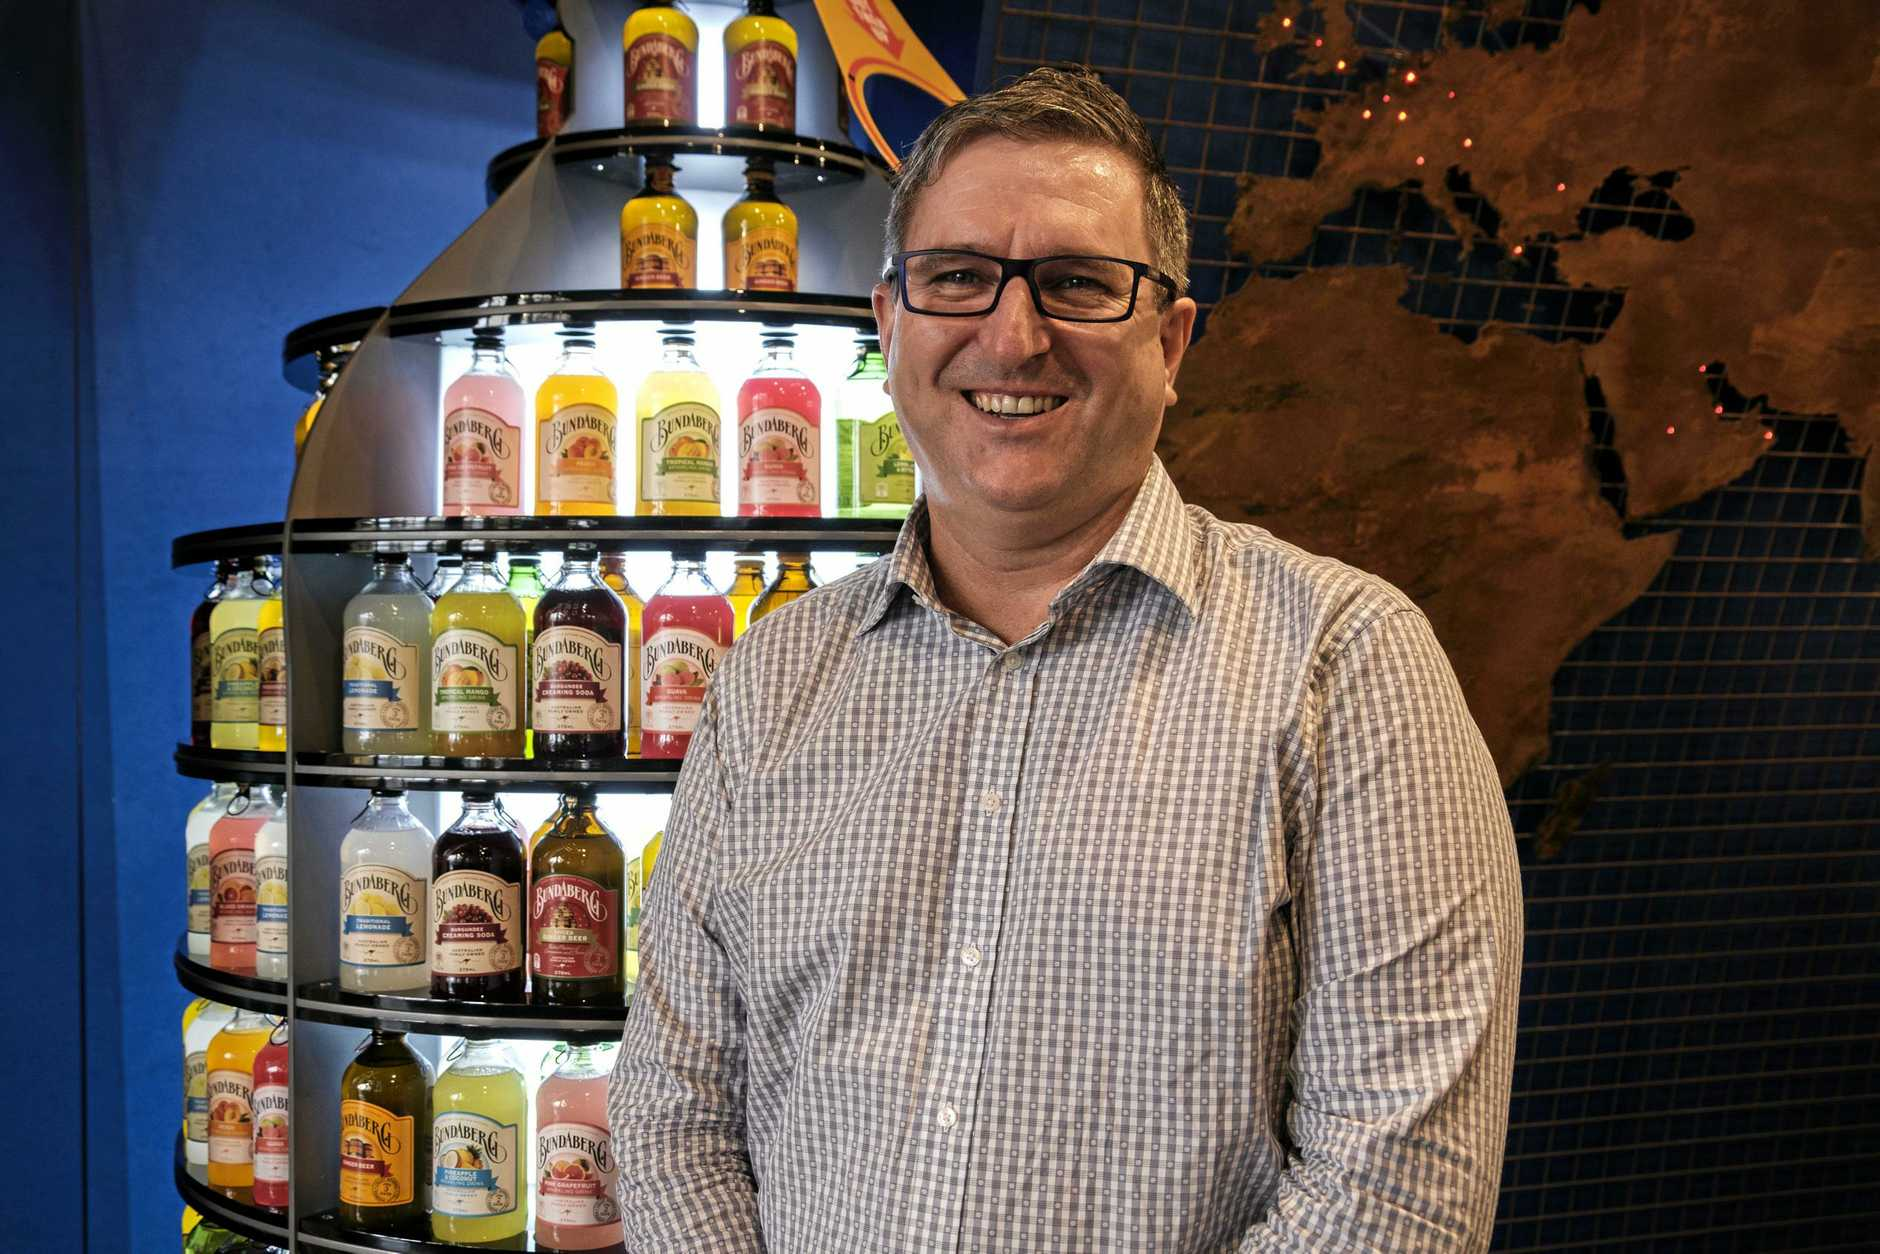 OPEN FOR BUSINESS: Bundaberg Brewed Drinks CEO John McLean welcomes tourists and locals alike to check out the new experience on offer at the newly refurbished, iconic Barrel.